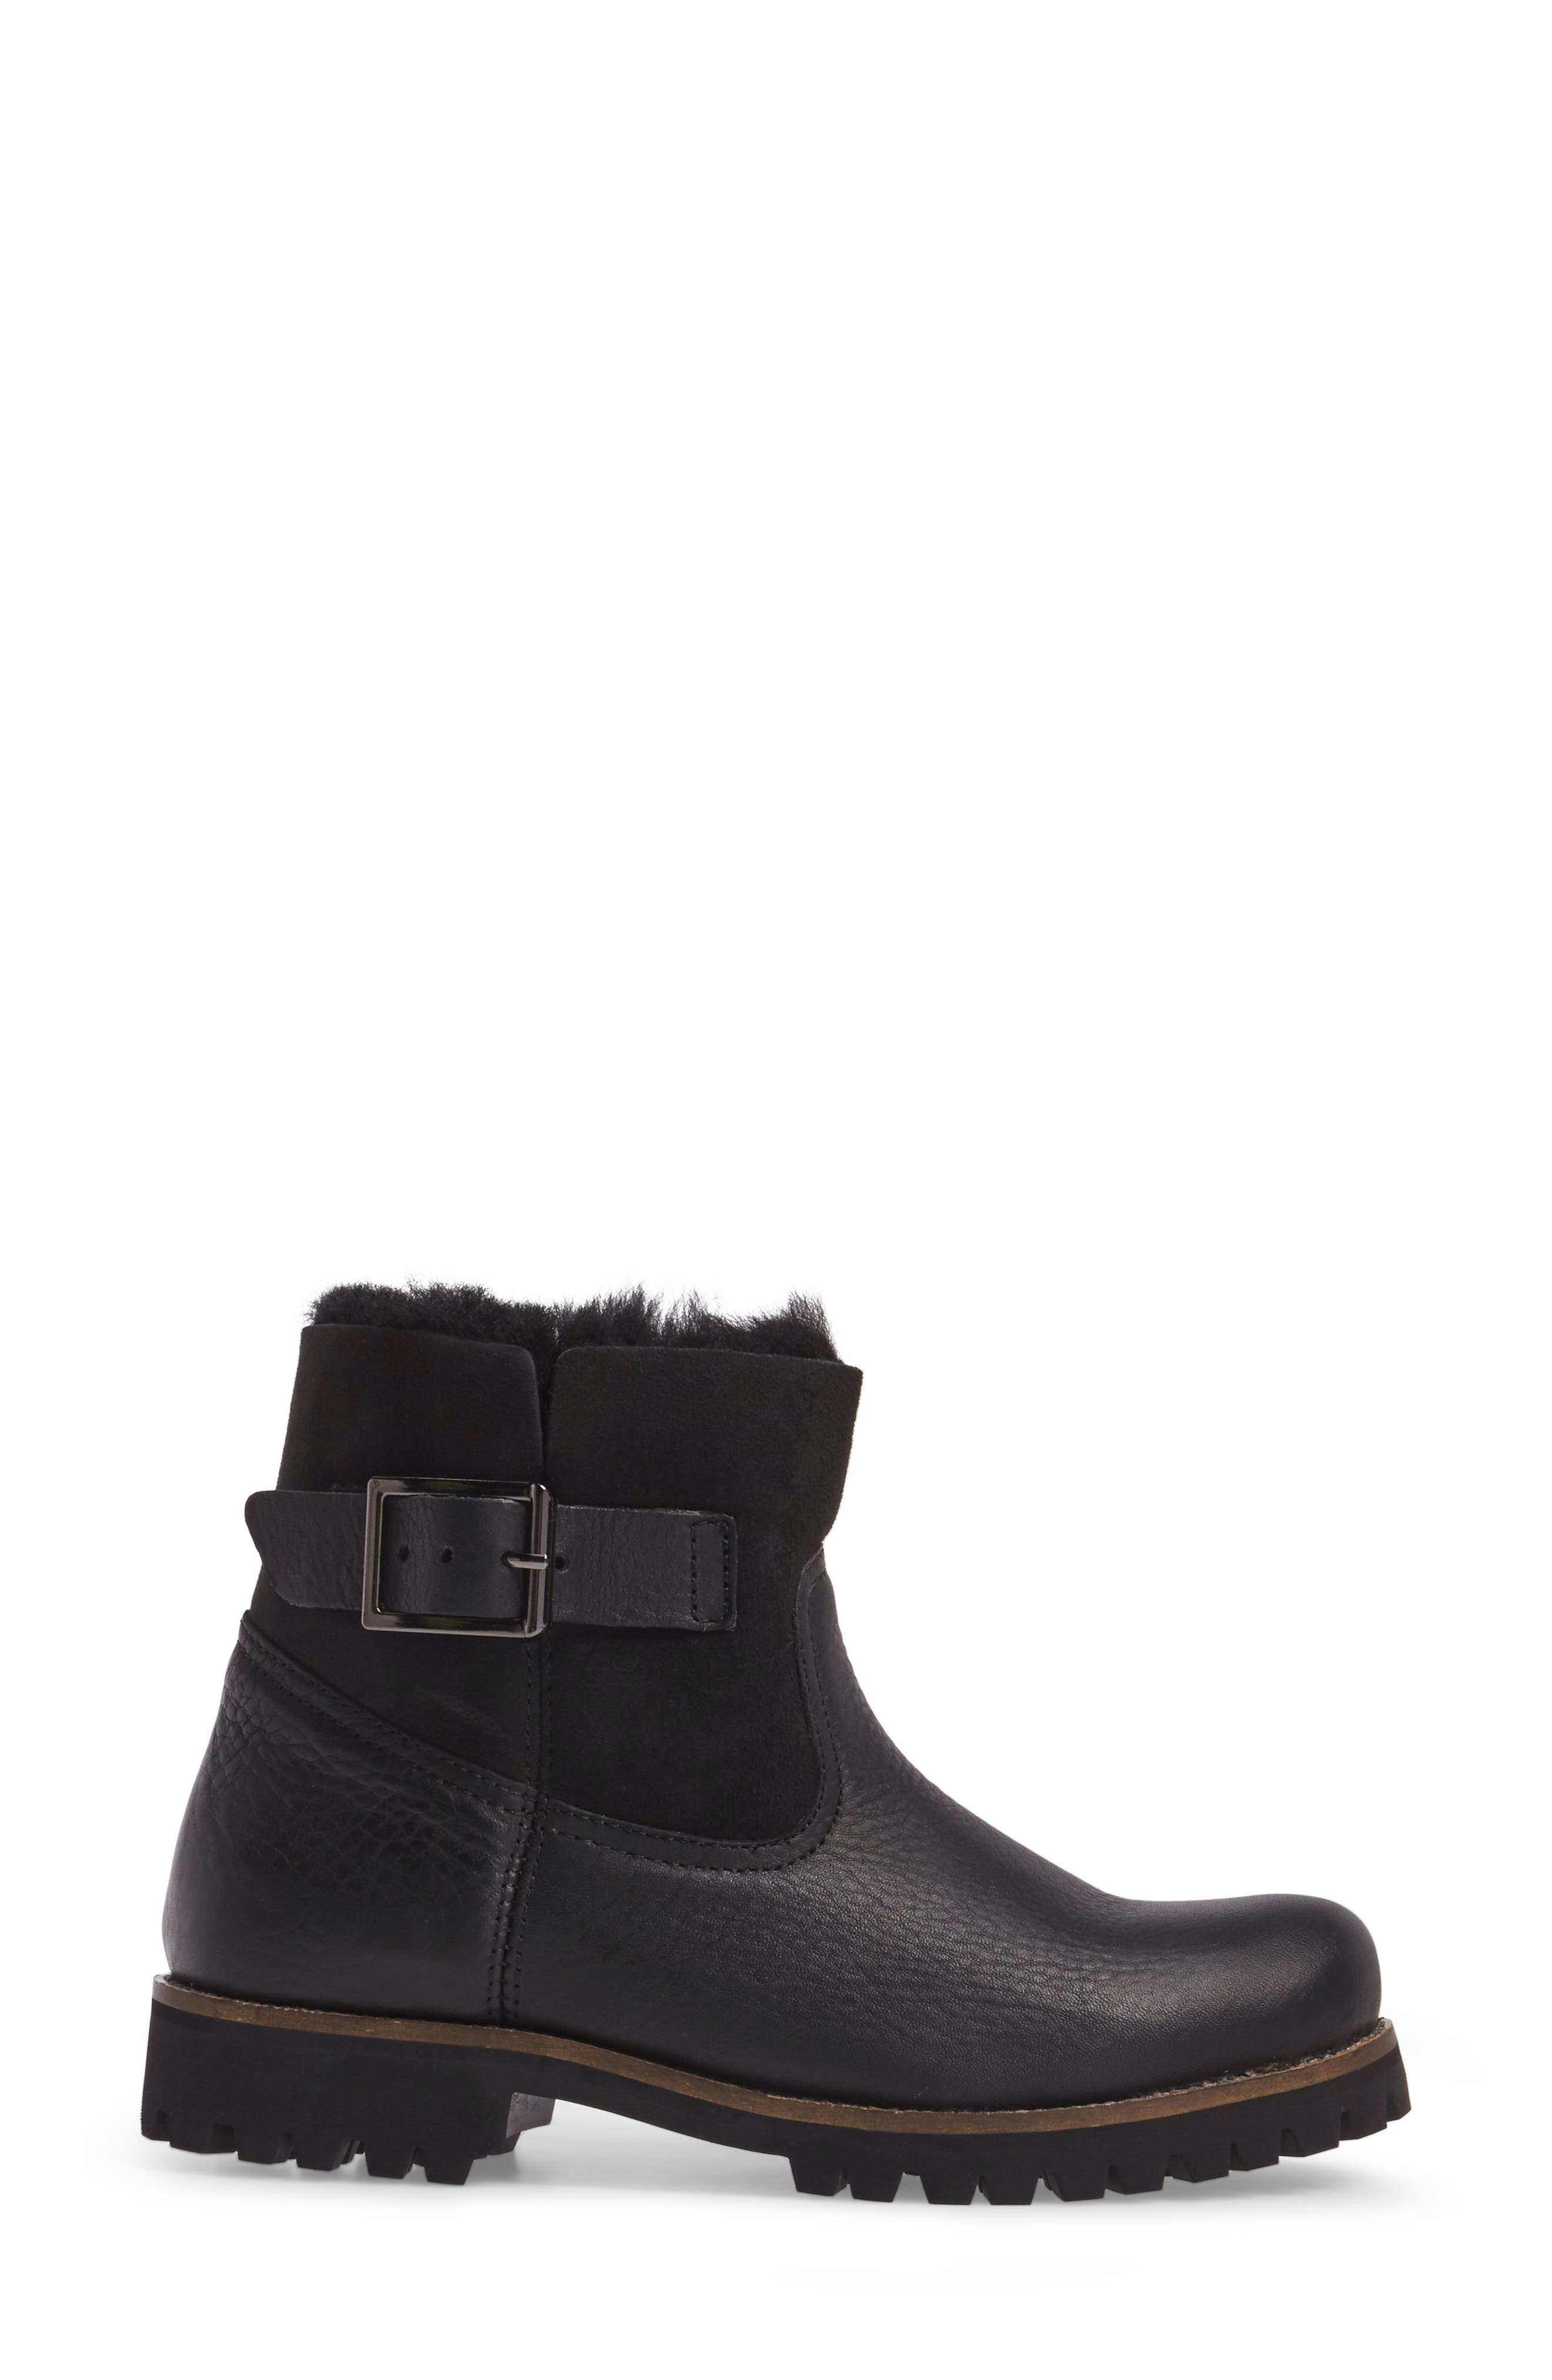 OL06 Genuine Shearling Lined Bootie,                             Alternate thumbnail 3, color,                             BLACK LEATHER